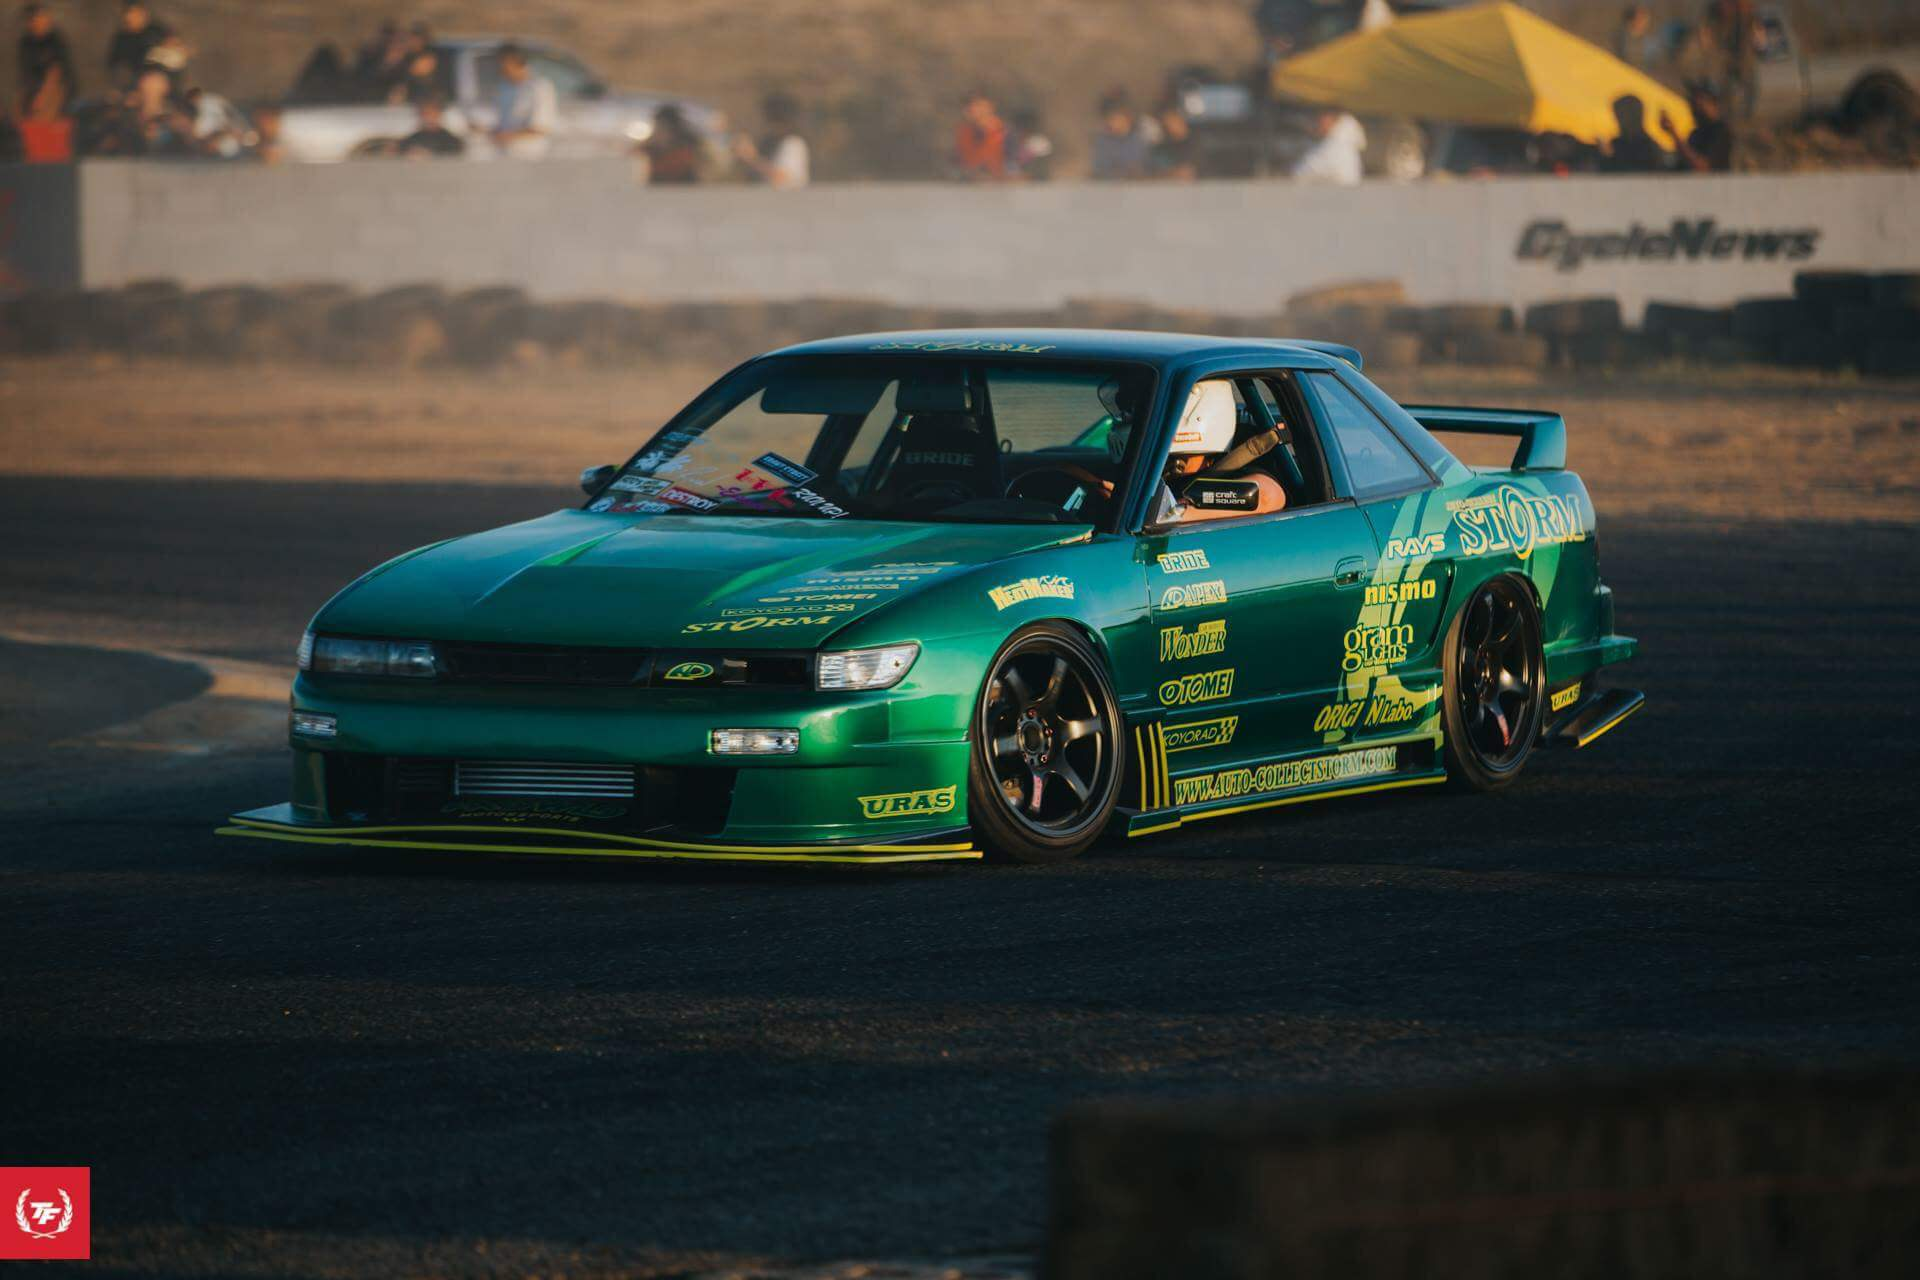 Machine Check(S13) - Engine: S13 SR20DET Redtrop, normalTurbo: S15 T28Footwork: STANCE coilover, HeatMaker KnuckleCooling: Koyo radiatorAccesories: Autocollect Storm